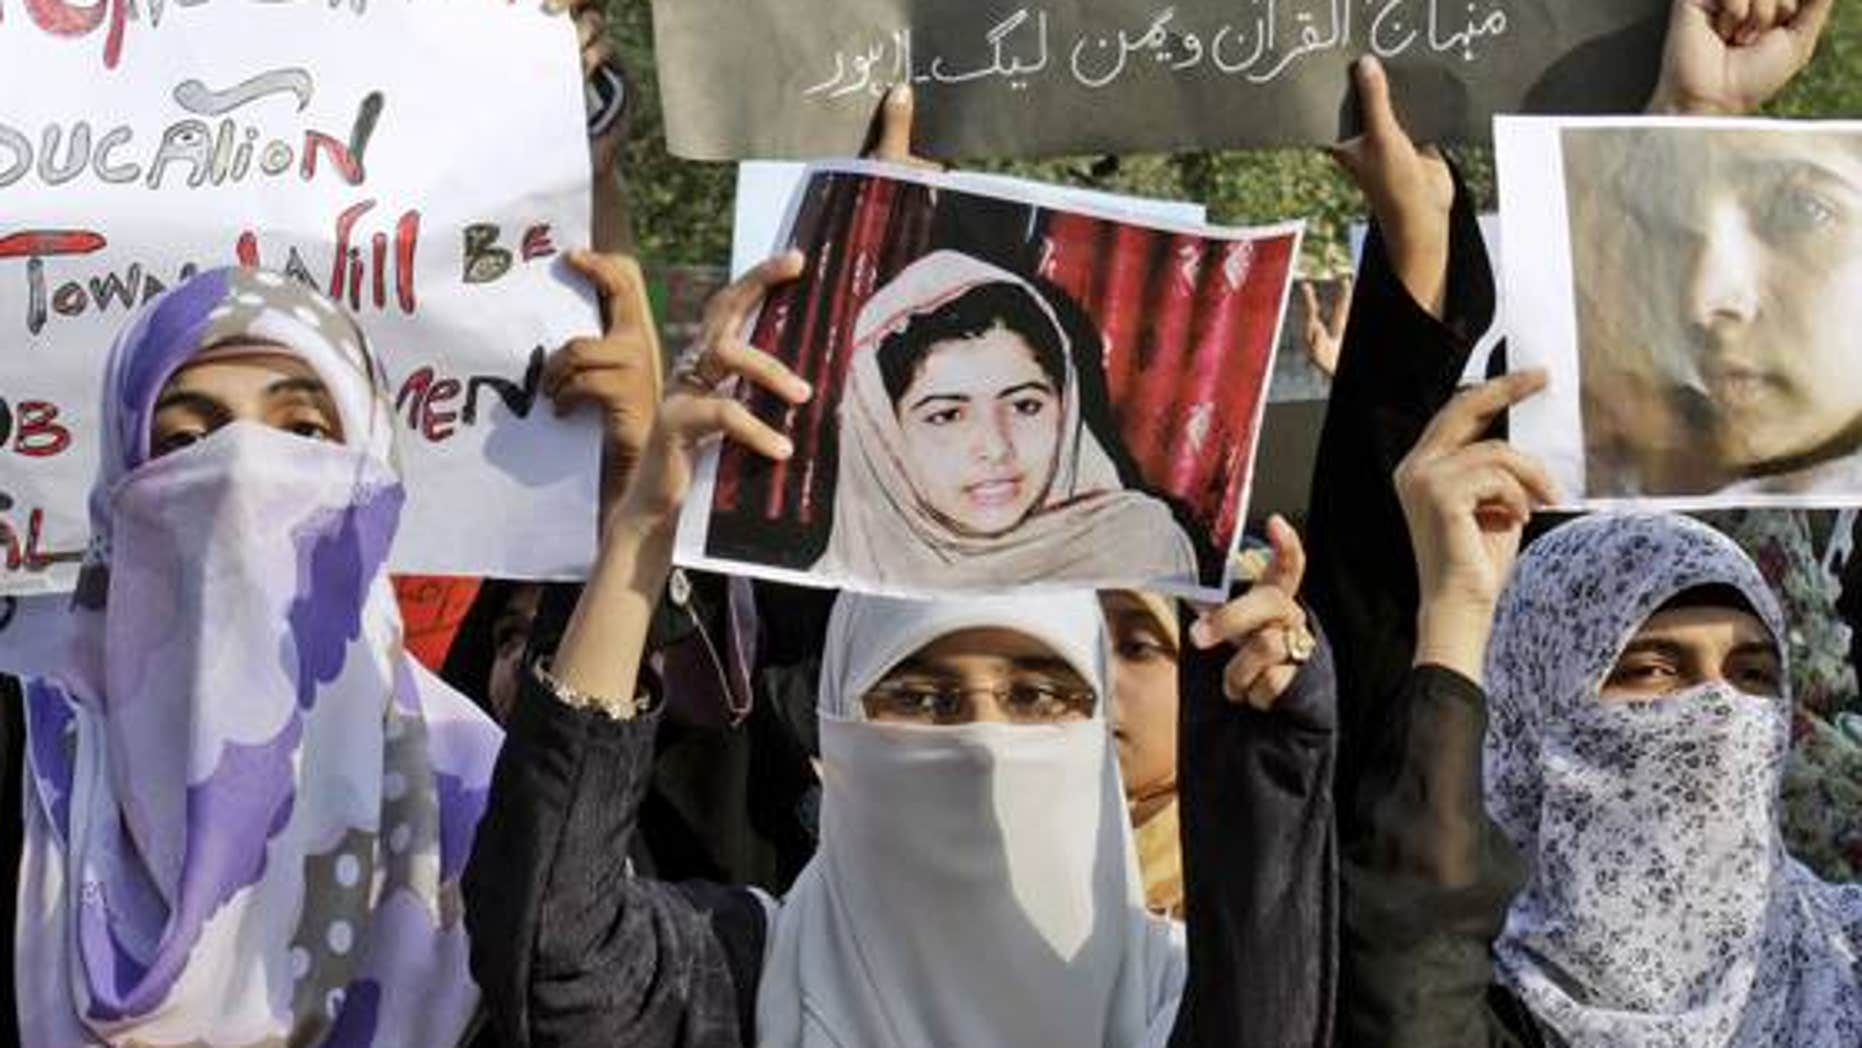 October 10, 2012: Pakistani members of Minhaj-ul-Quran Women League hold up pictures of 14-year-old schoolgirl Malala Yousufzai in Lahore, Pakistan.